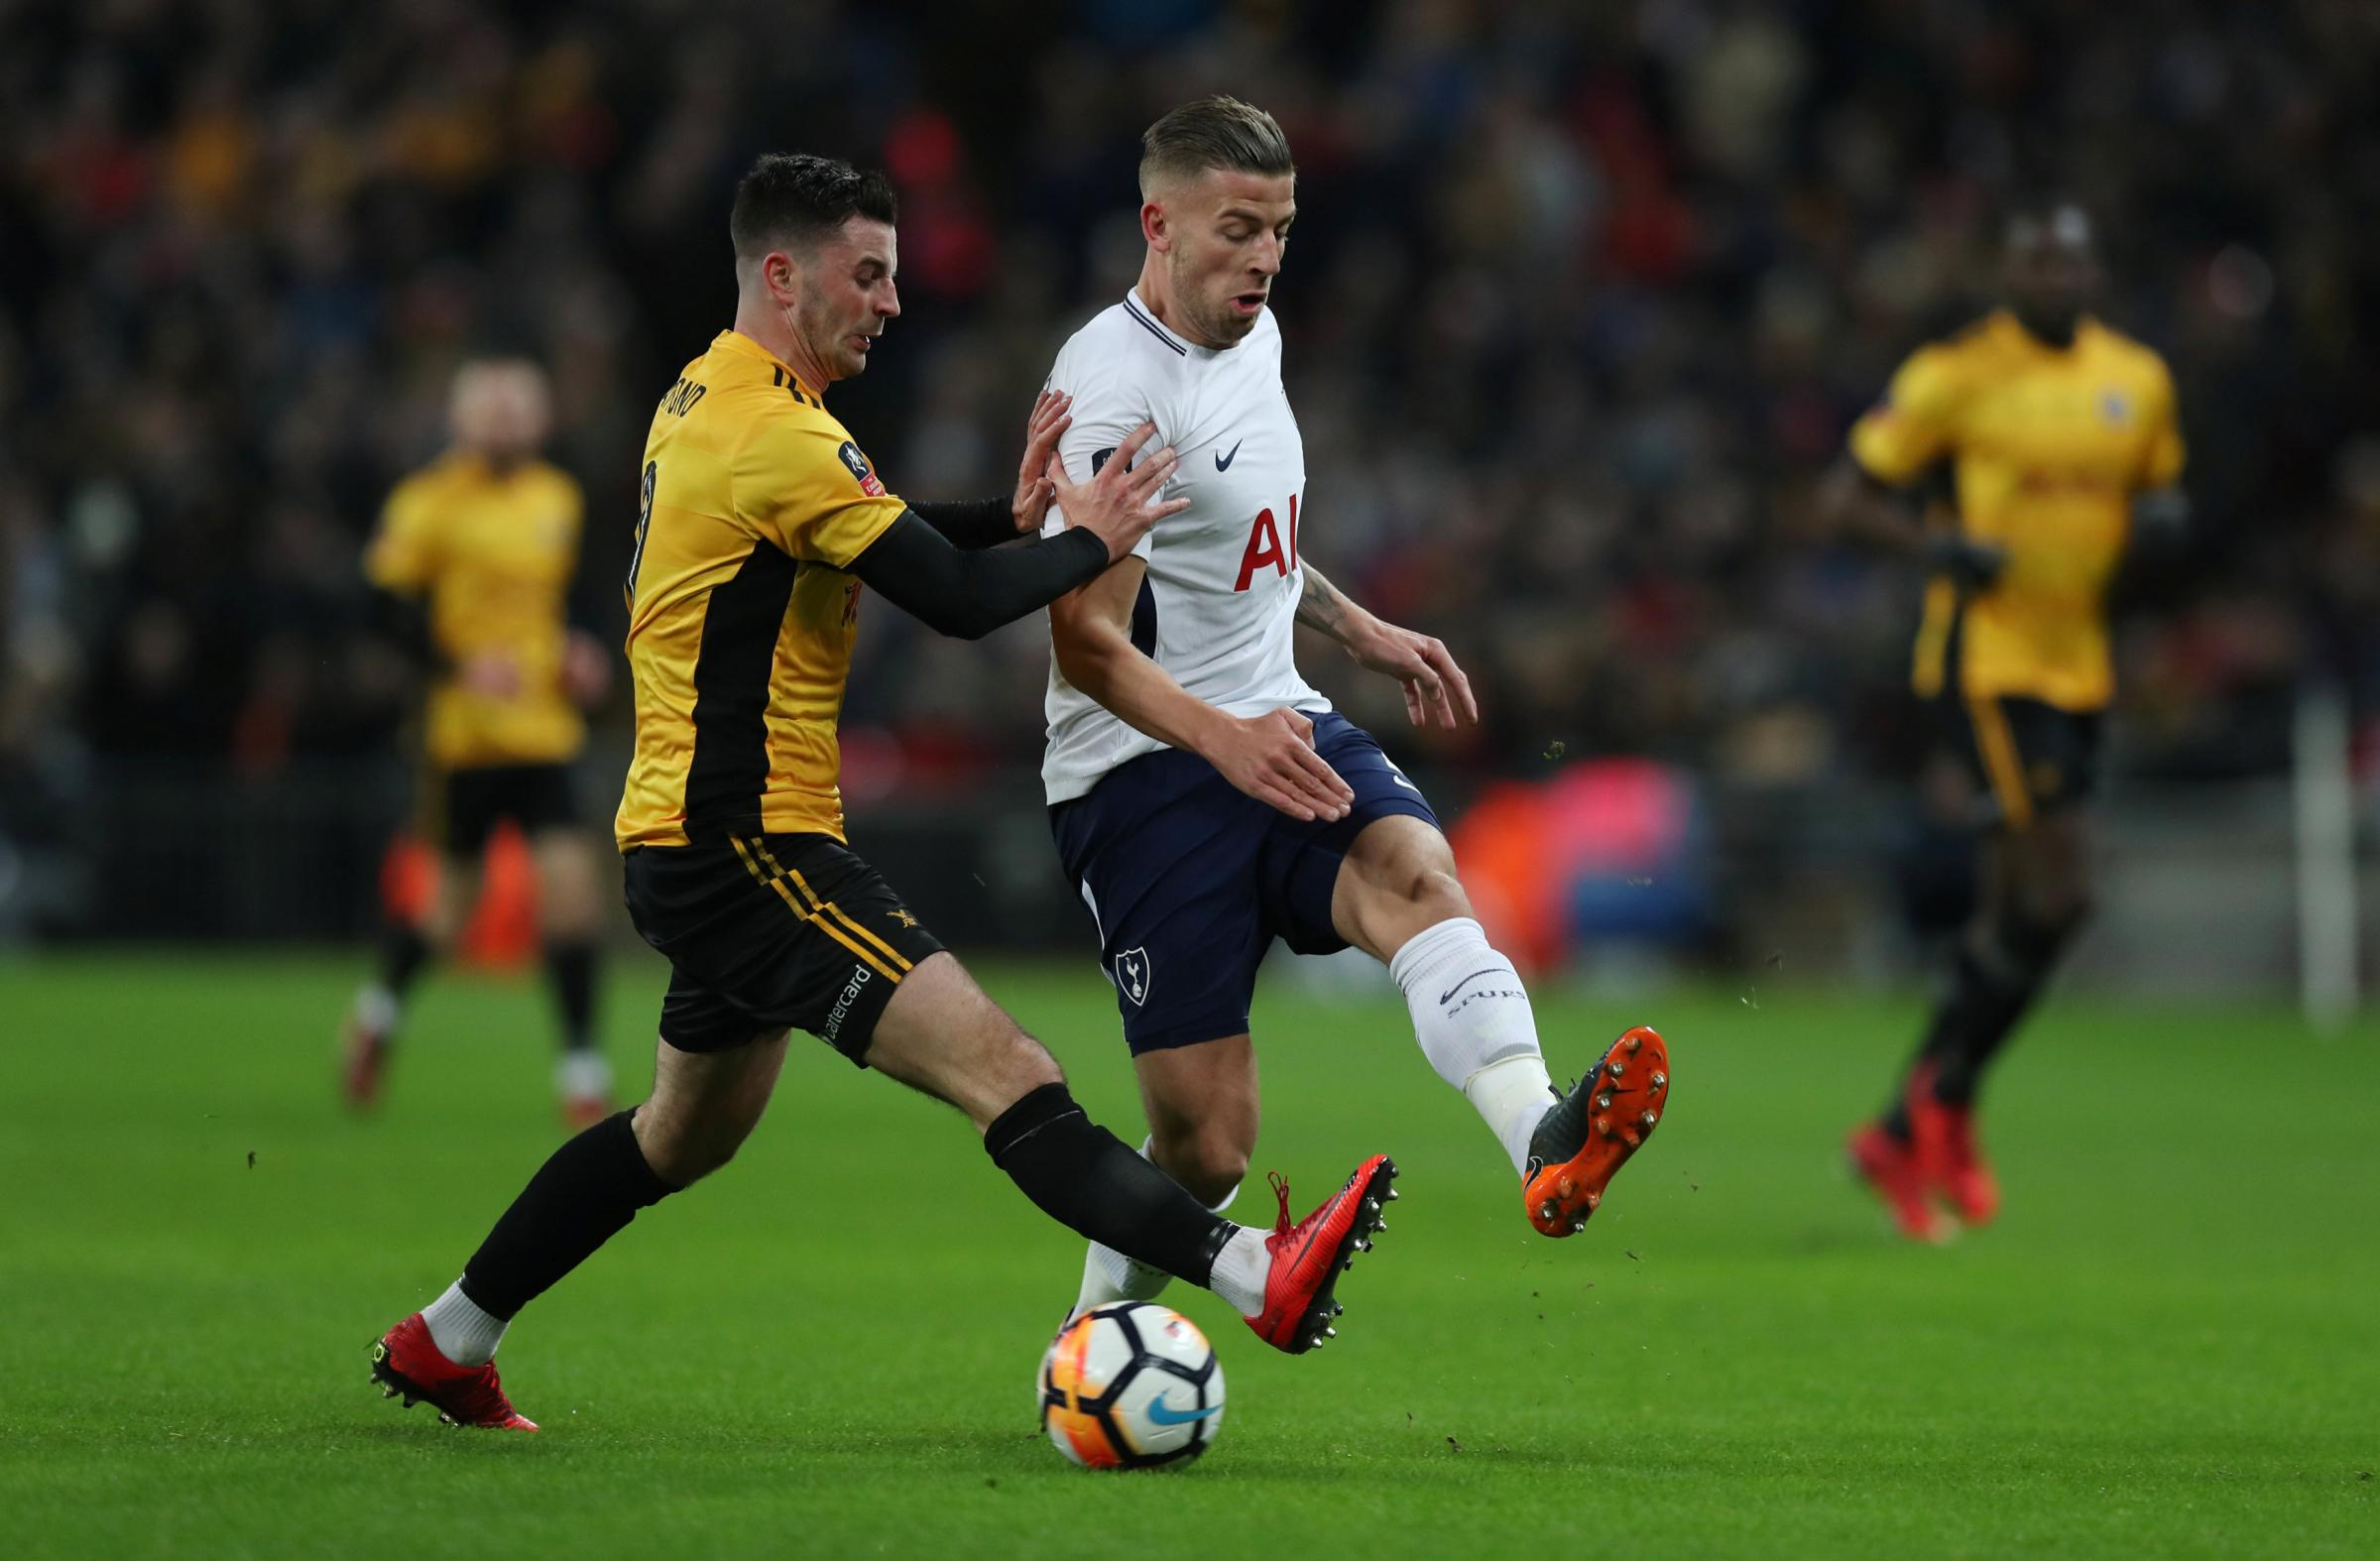 Back in action: Toby Alderweireld returned against Newport County on Wednesday. Picture: Action Images